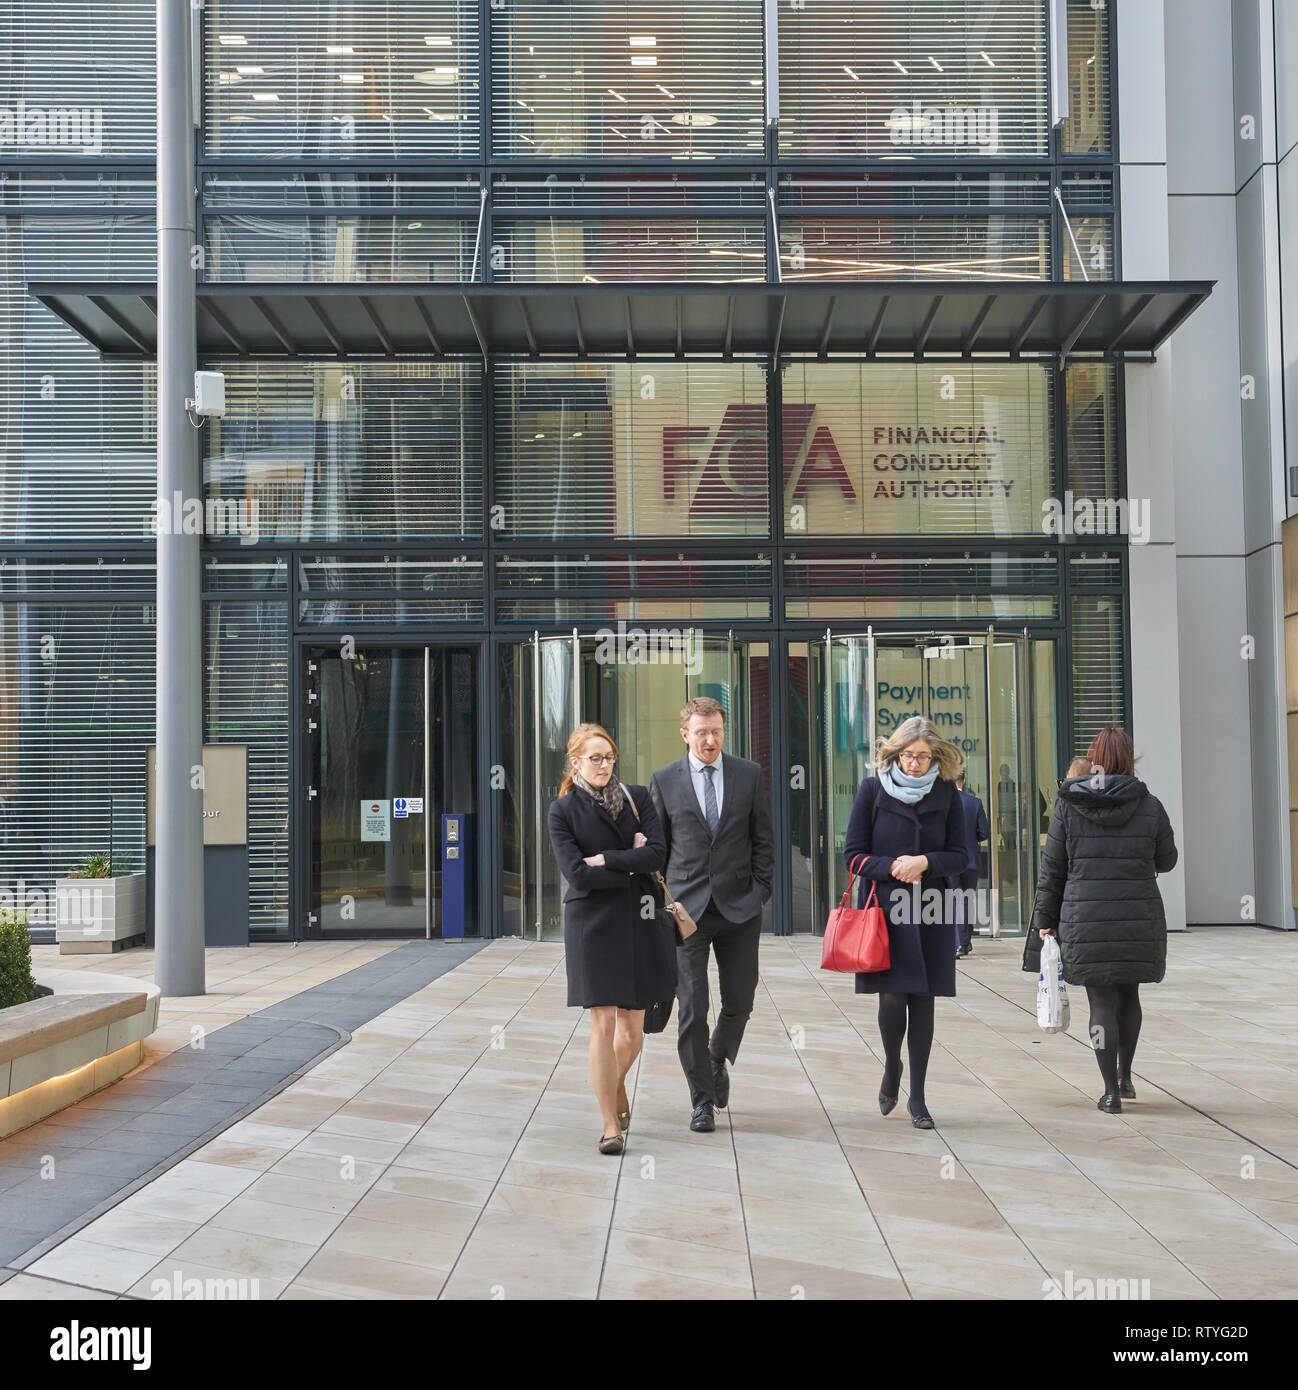 financial conduct authority offices London - Stock Image